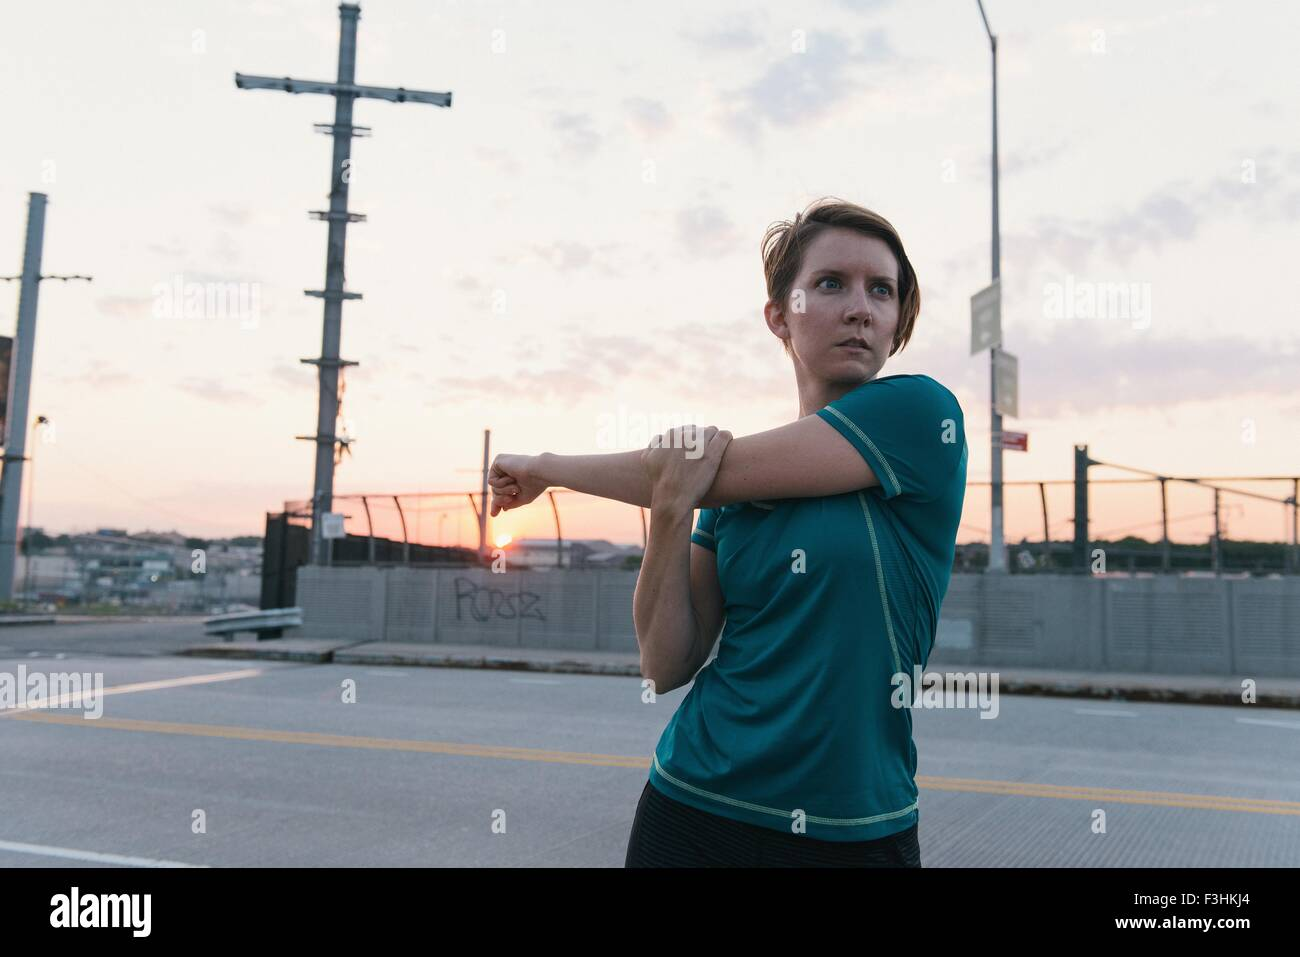 Mid adult woman, working out, stretching, outdoors - Stock Image